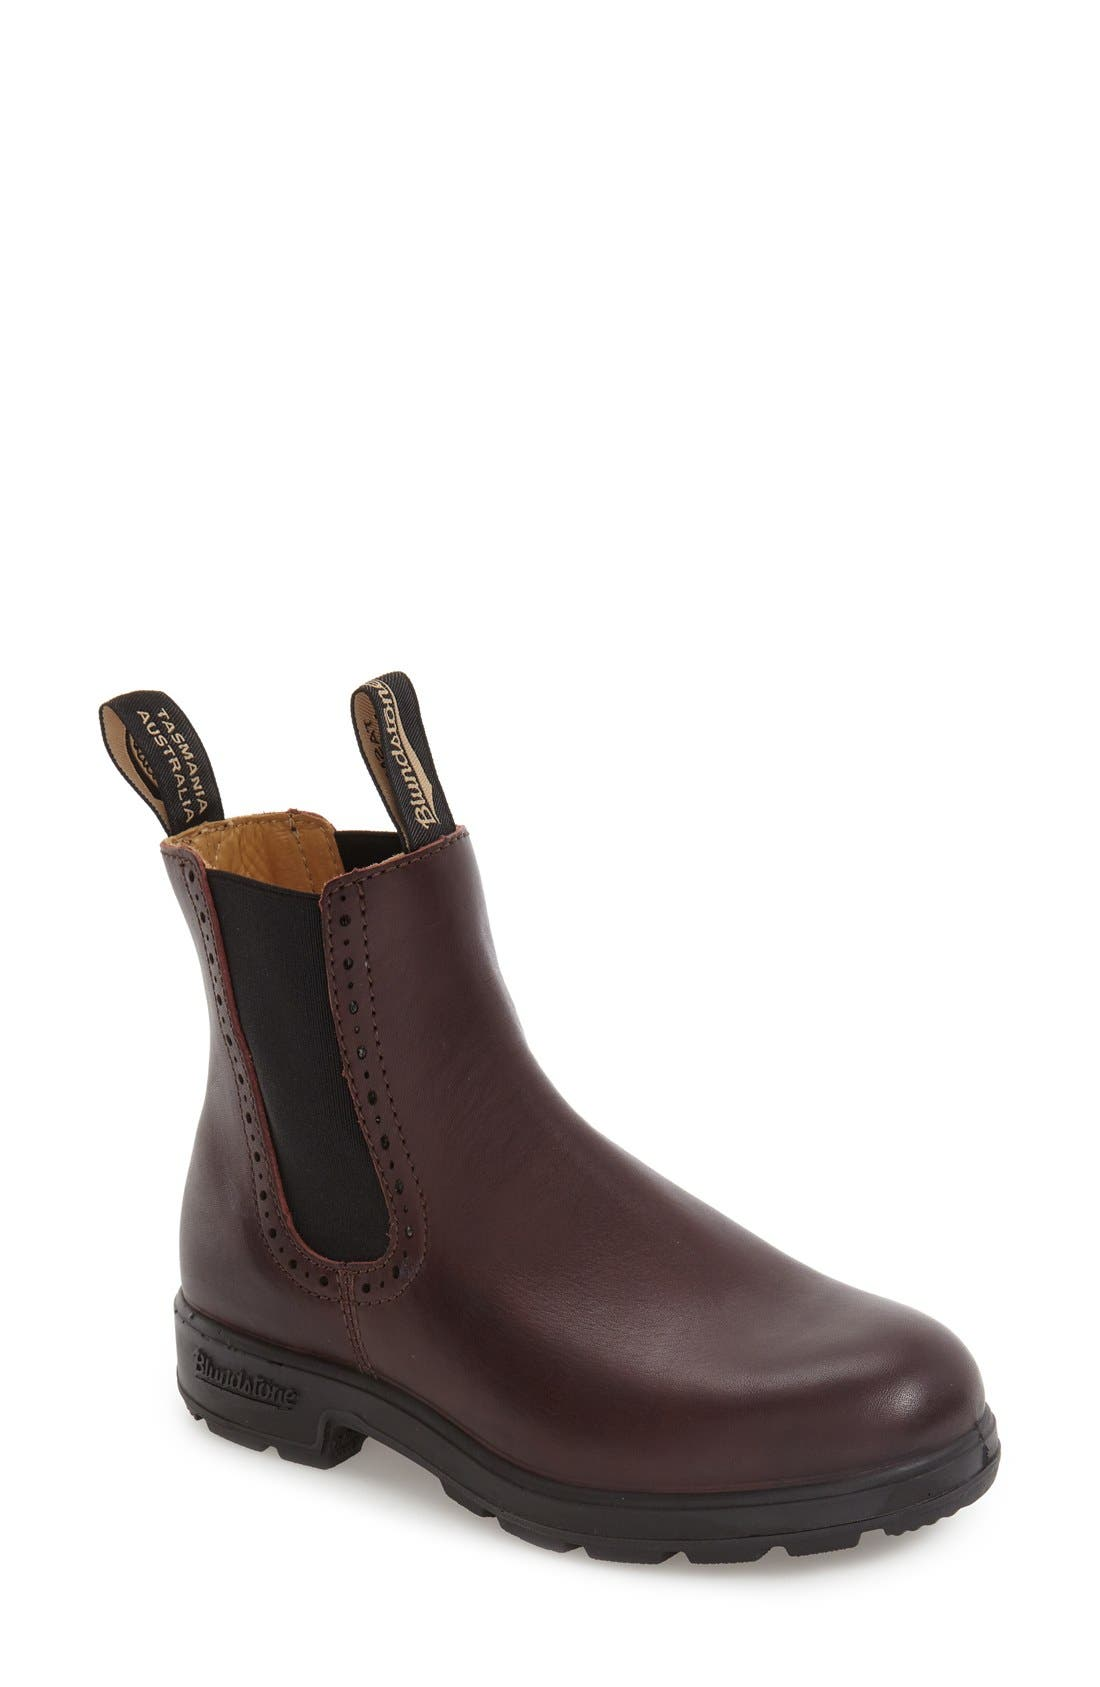 Footwear 'Original Series' Water Resistant Chelsea Boot,                         Main,                         color, Shiraz Leather